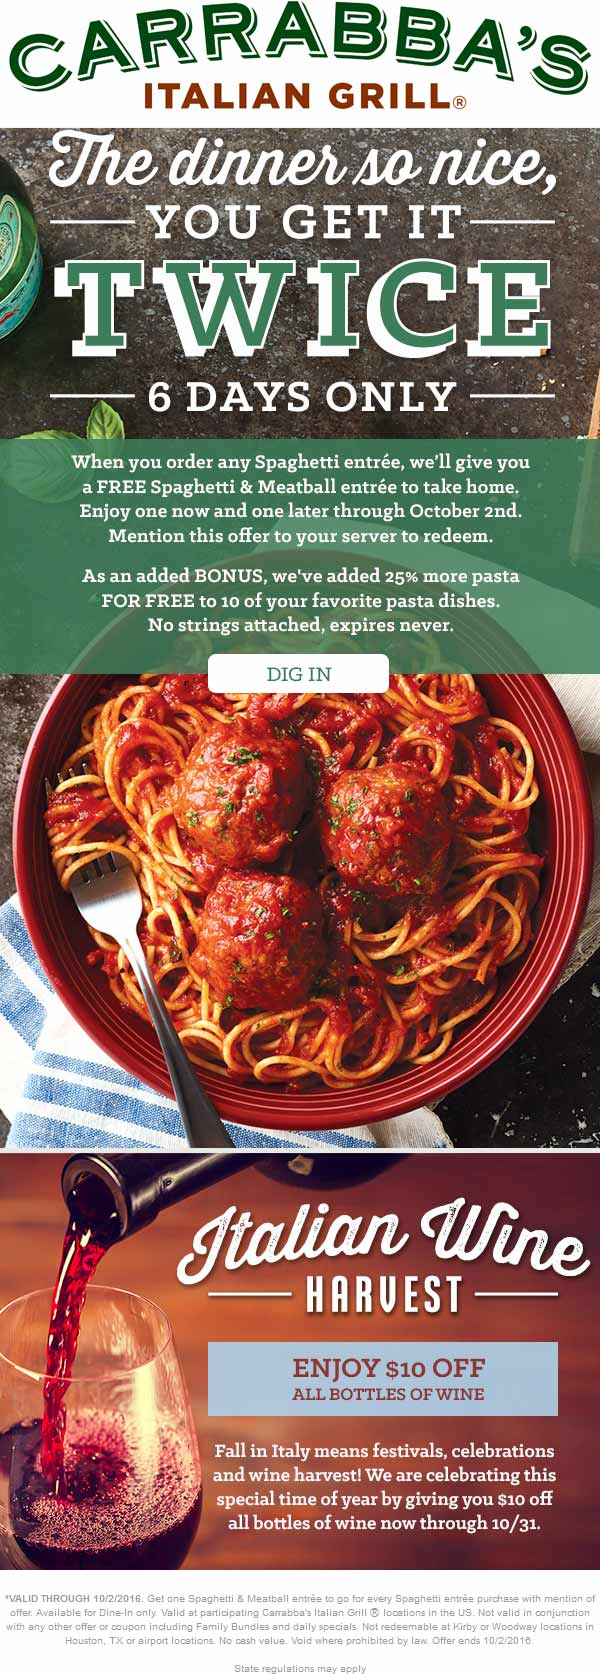 Carrabbas.com Promo Coupon Second spaghetti & meatballs free as takeout at Carrabbas restaurants